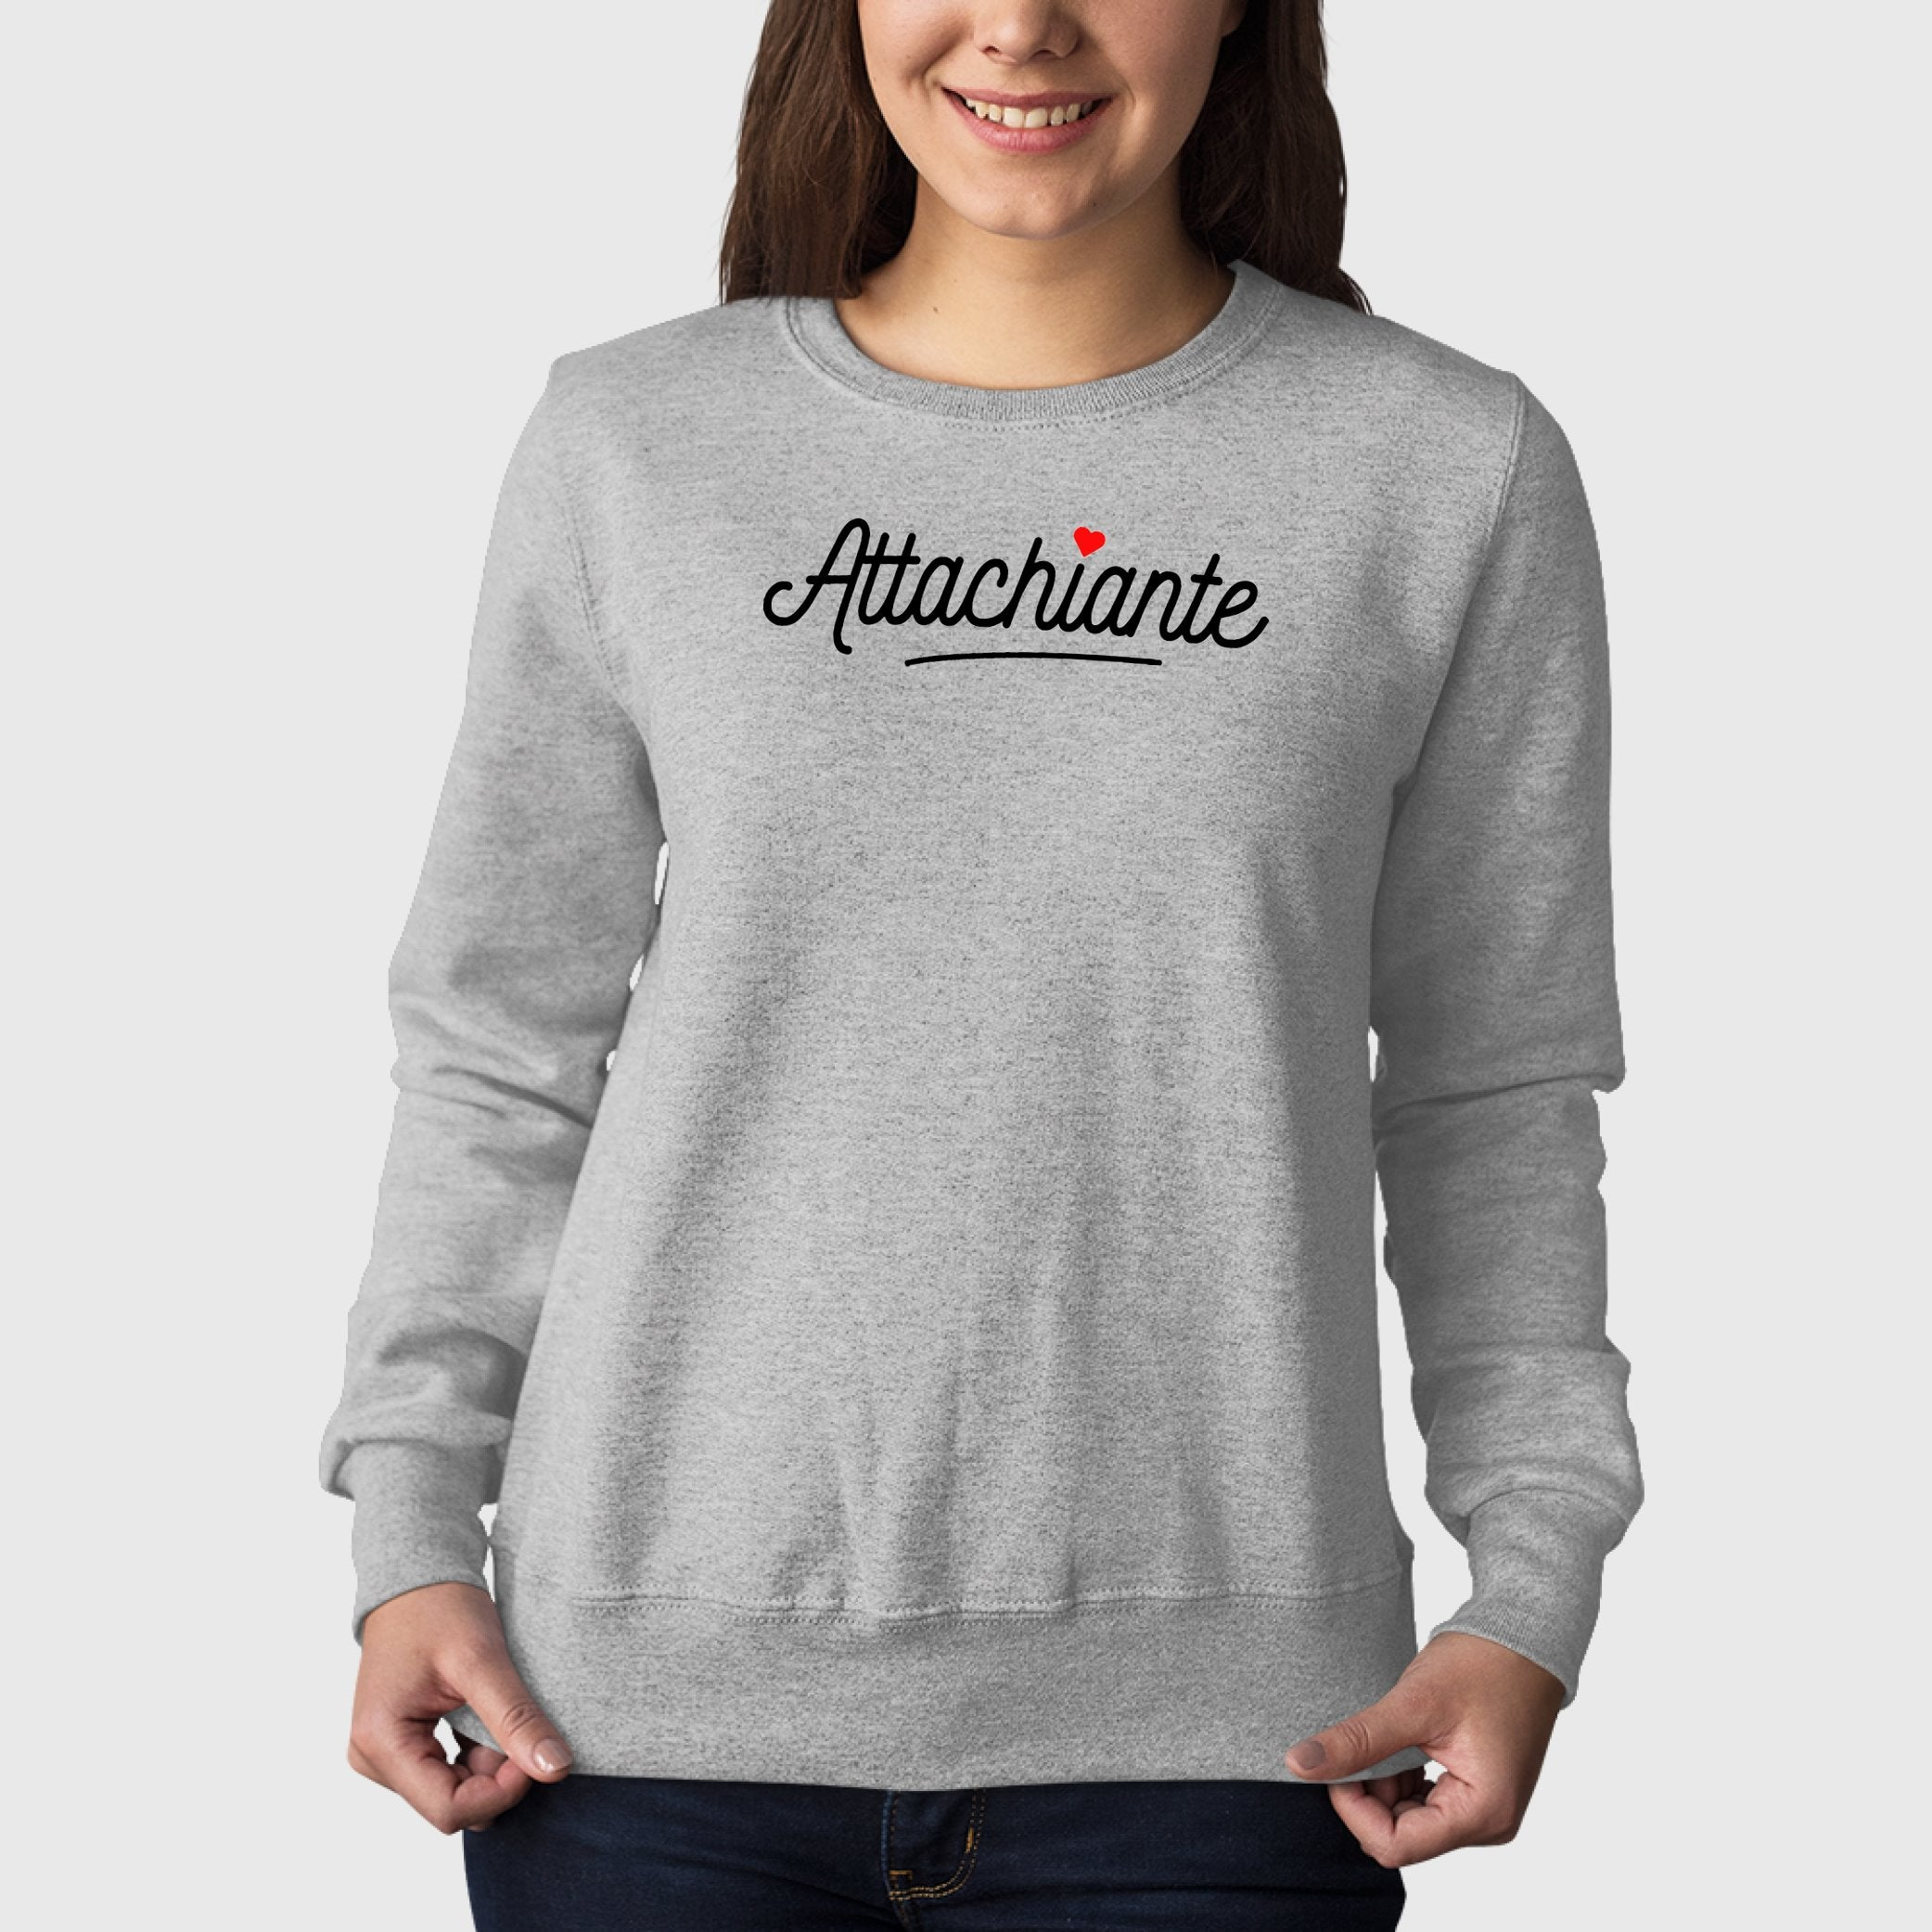 Sweat Adulte Attachiante Gris